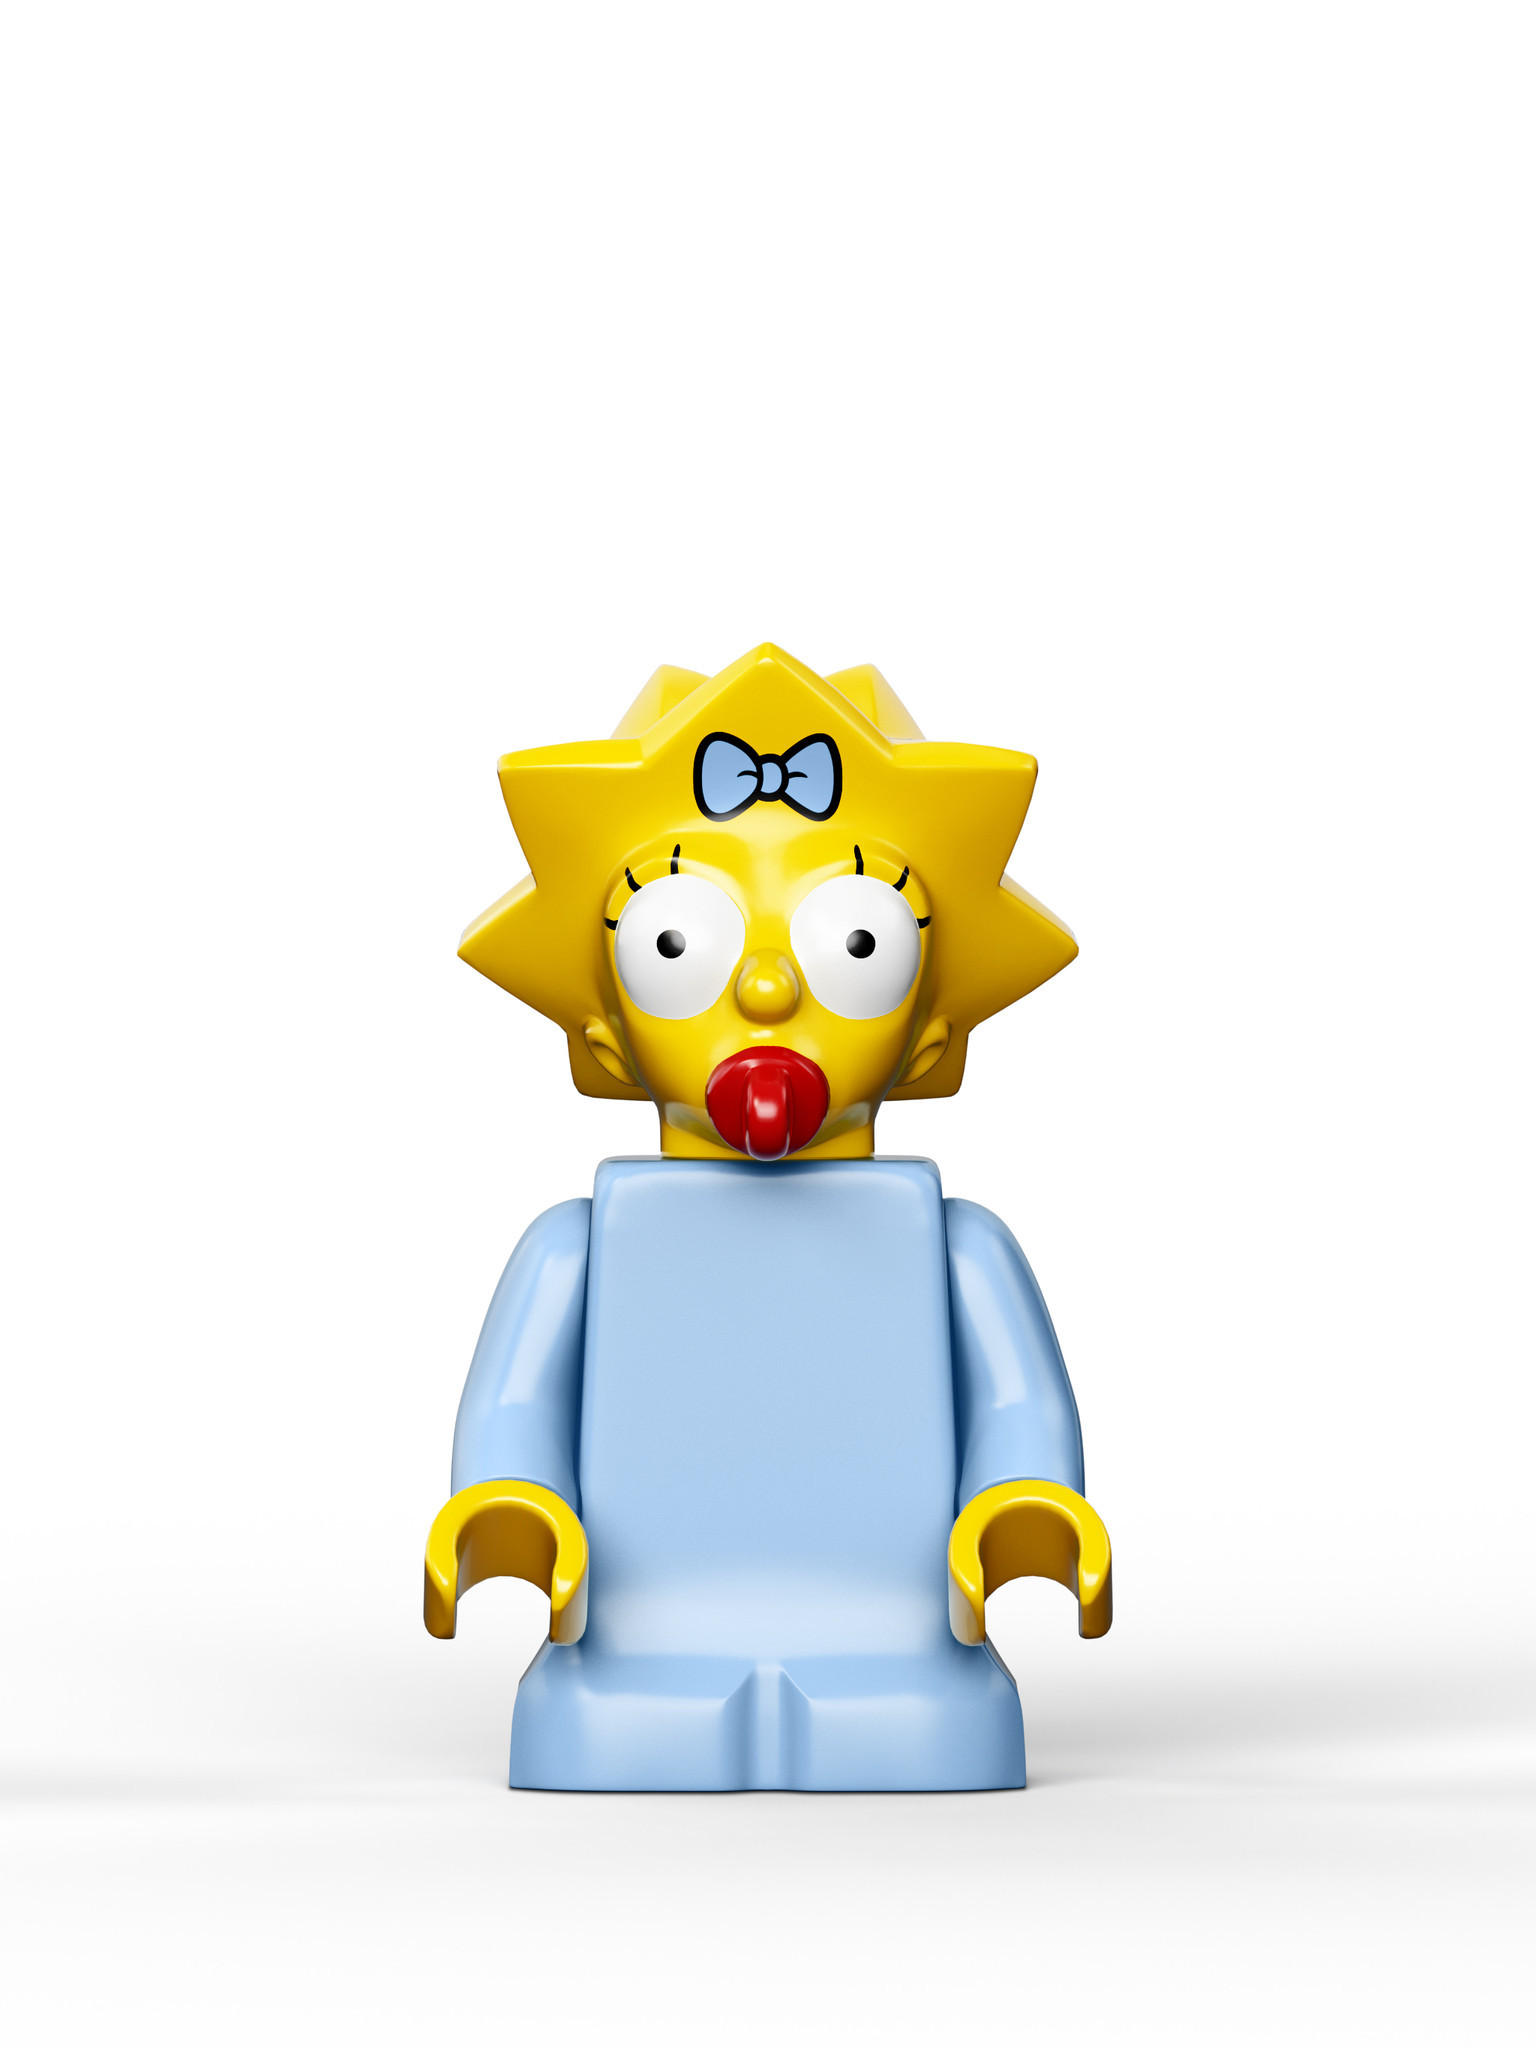 la-sh-simpsons-legos-20140109-004